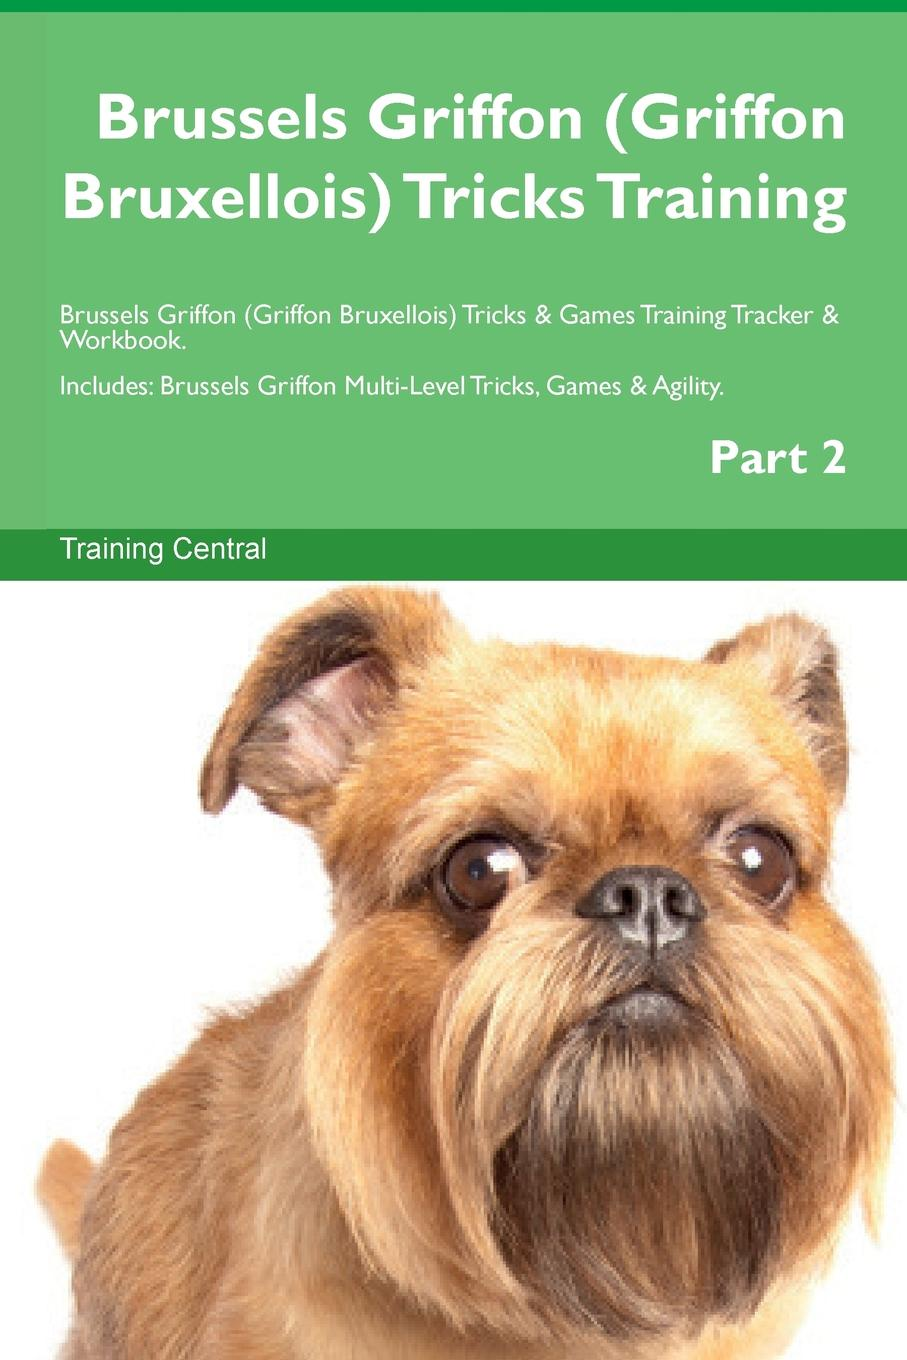 Training Central Brussels Griffon (Griffon Bruxellois) Tricks Training Brussels Griffon (Griffon Bruxellois) Tricks & Games Training Tracker & Workbook. Includes. Brussels Griffon Multi-Level Tricks, Games & Agility. Part 2 brussels type